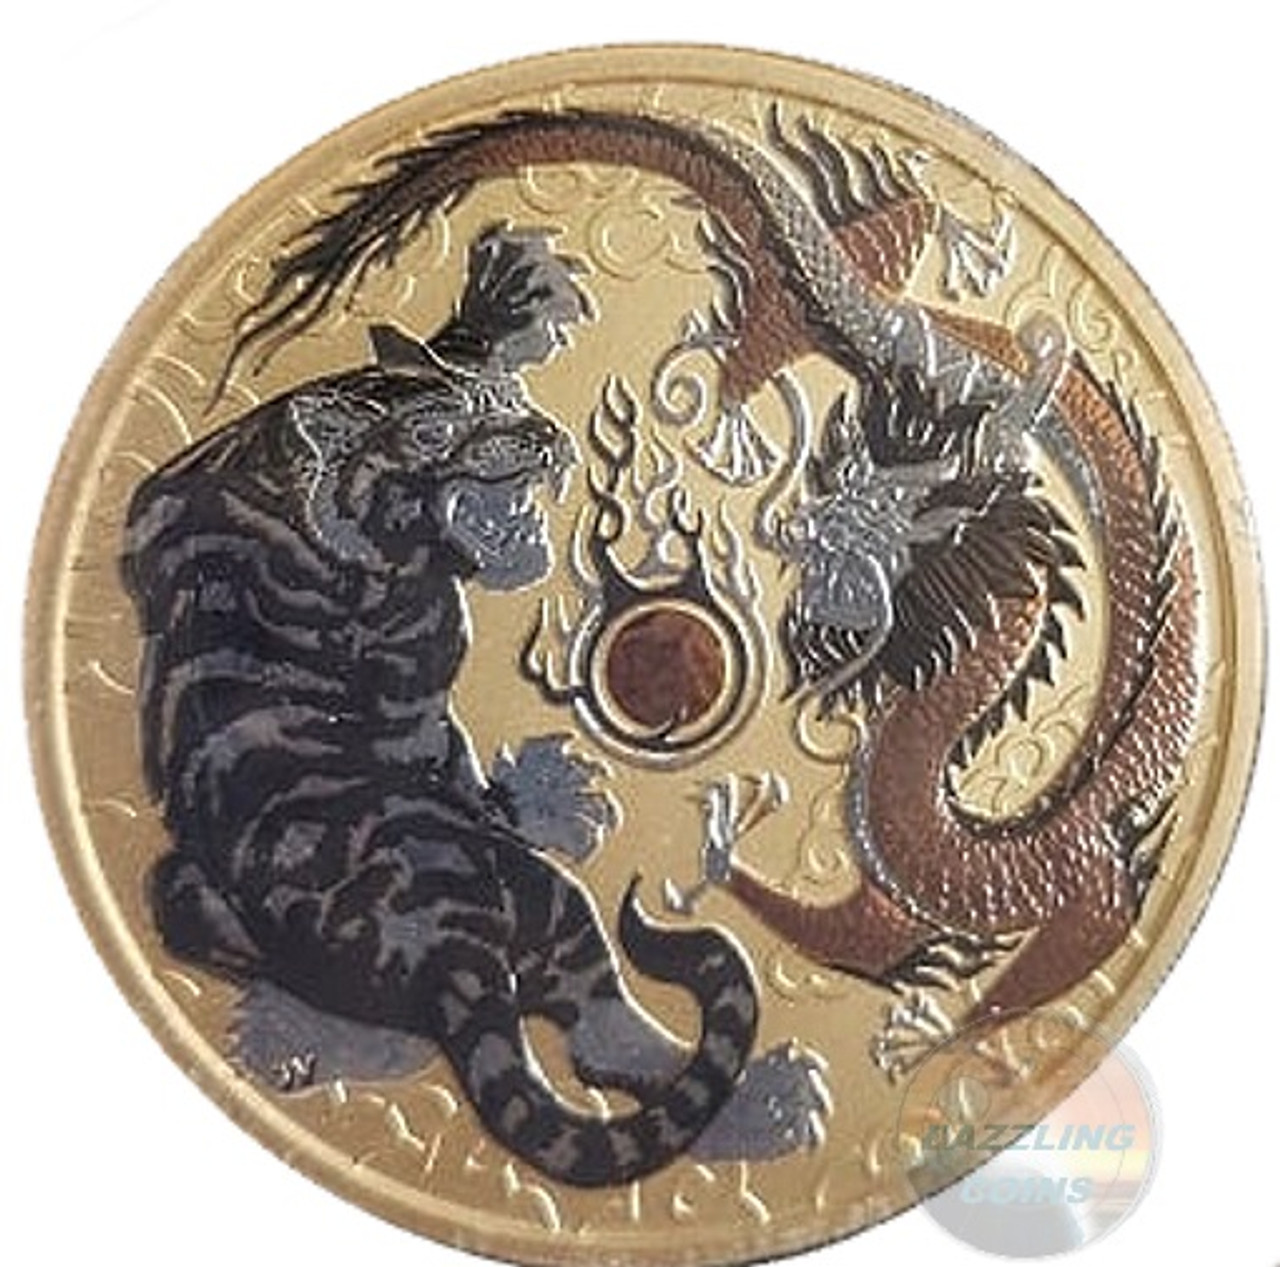 Box /& COA 2018 Australian Dragon /& Tiger Colorized Ruthenium 1oz Silver Coin